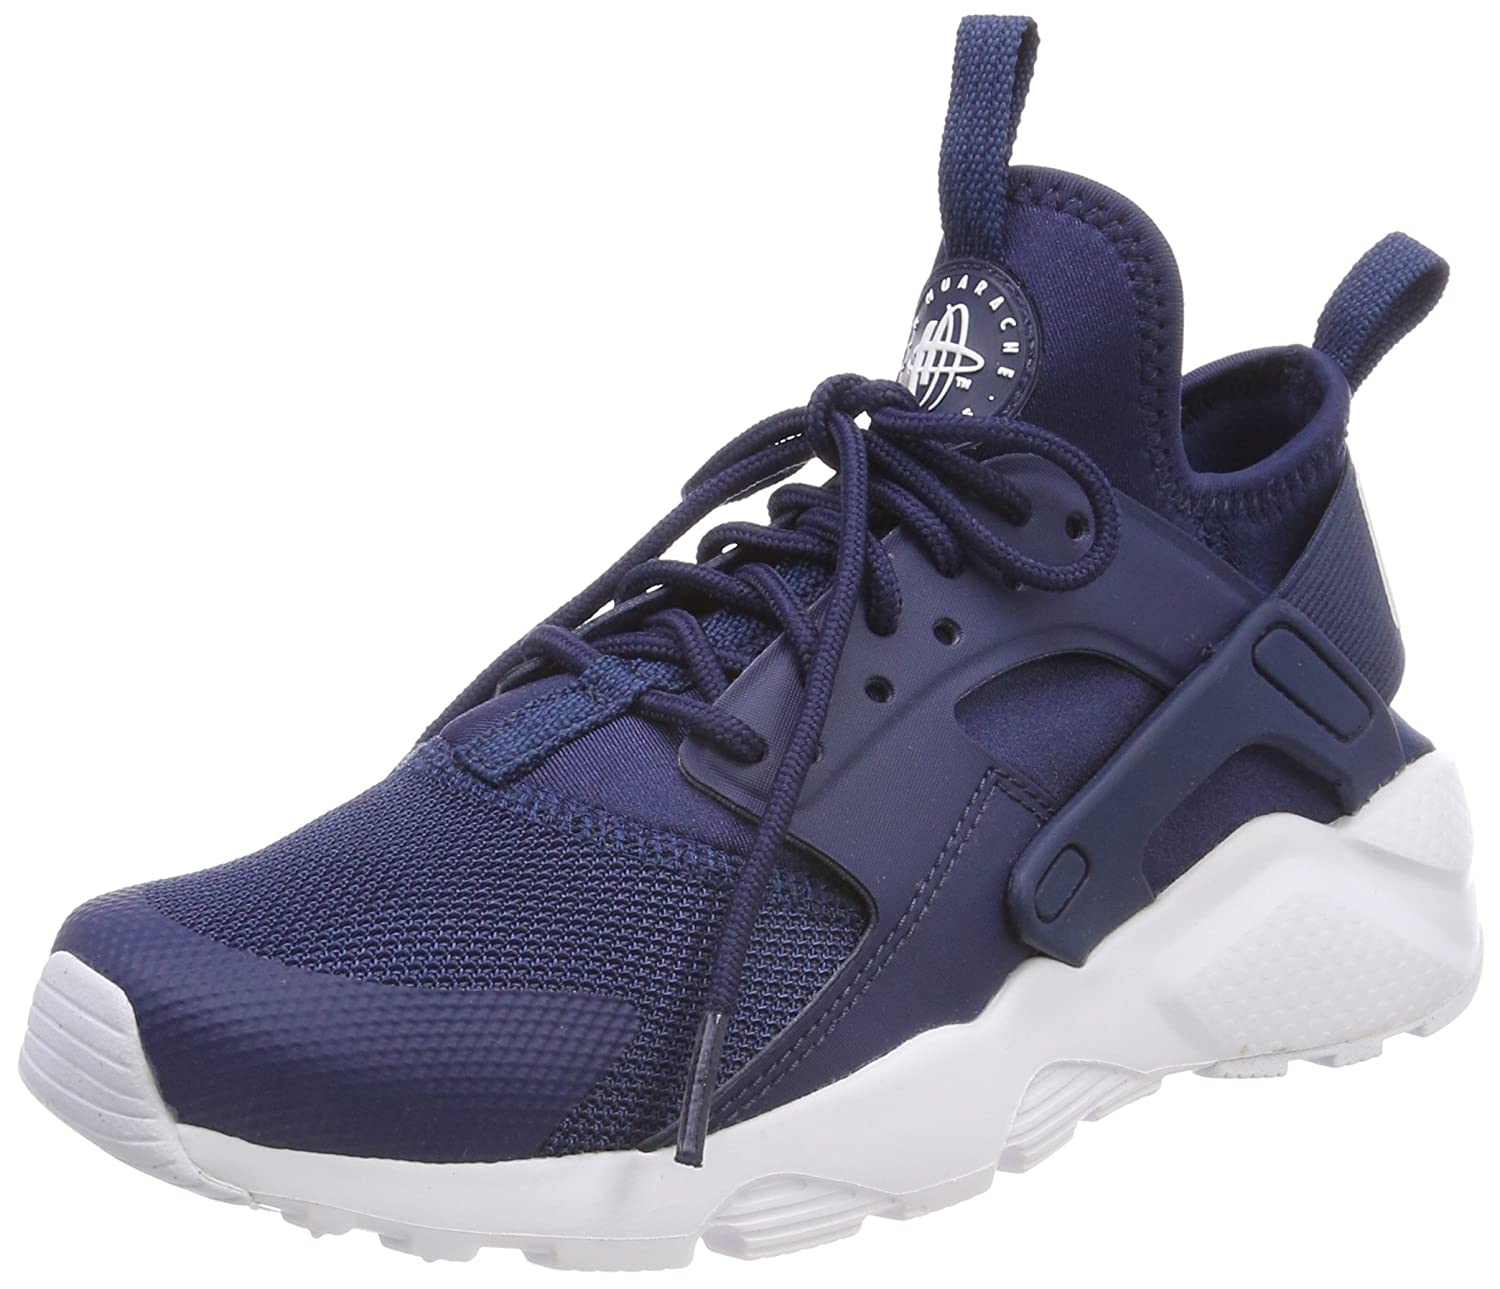 5248d0e3378ce Nike Unisex Kids  Air Huarache Run Ultra (Gs) Low-Top Sneakers ...